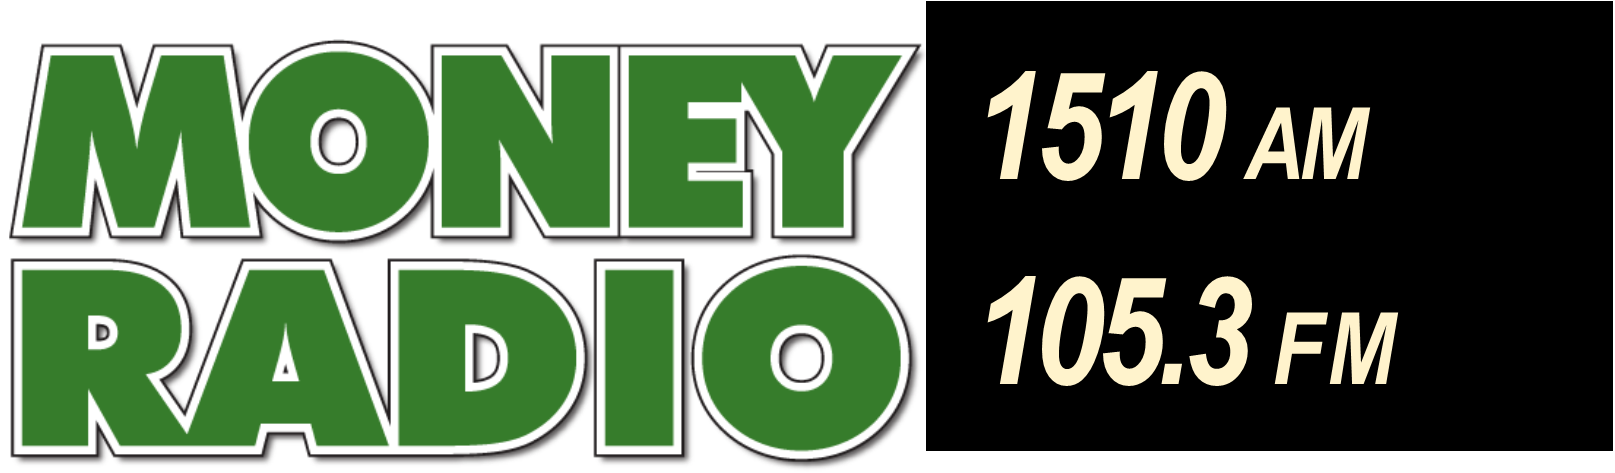 Steve Jurich, the founder of myannuityguy.com is on Money Radio daily from 8-9am